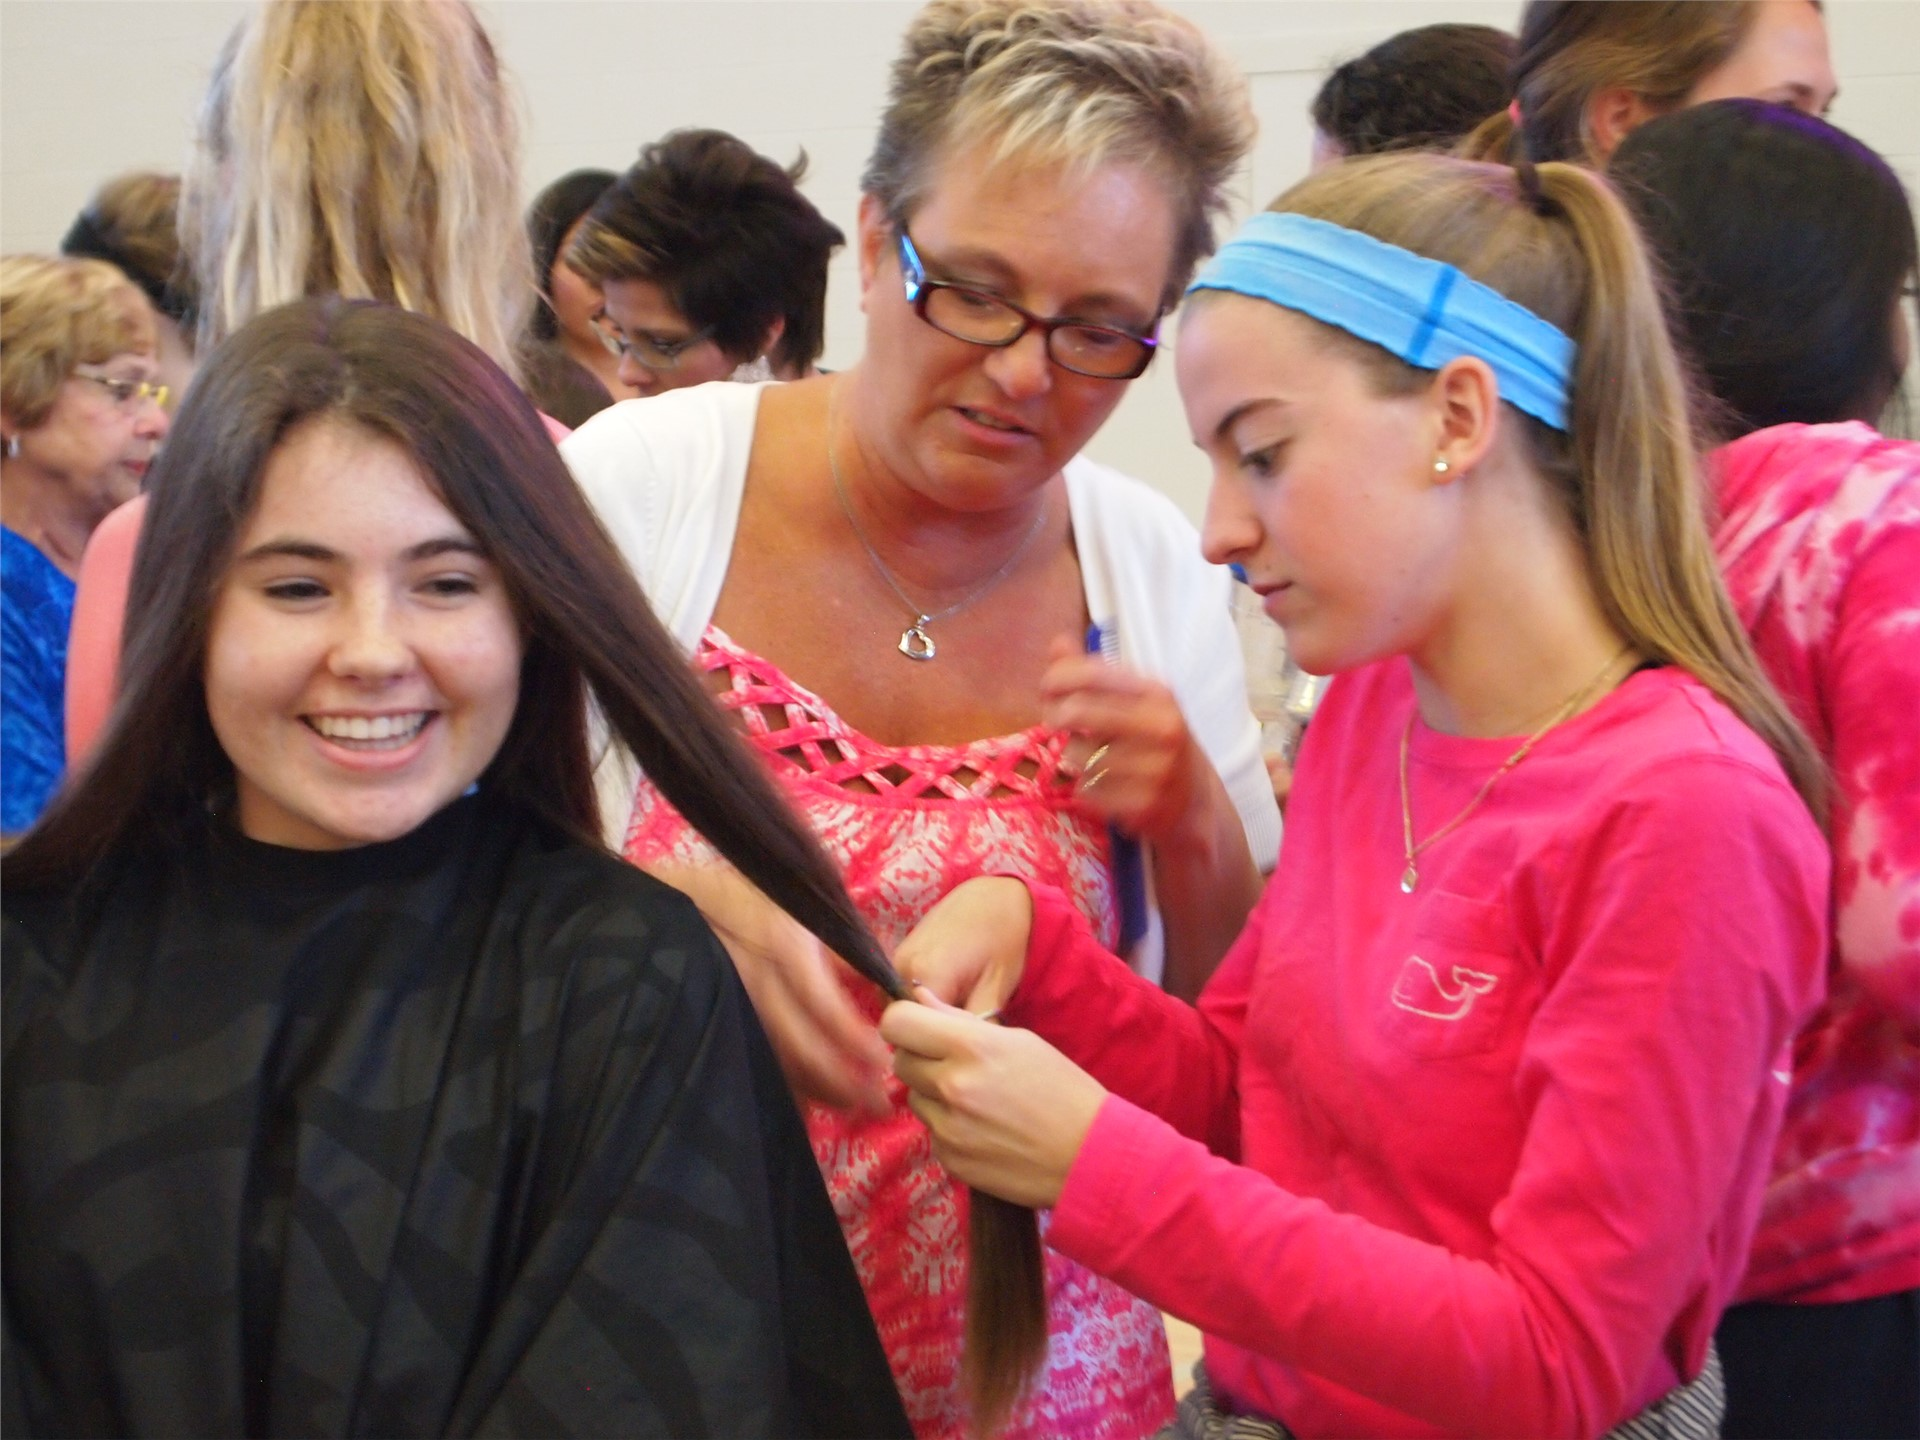 61 young women donated hair for cancer patients at SUA's Beautiful Lengths Event